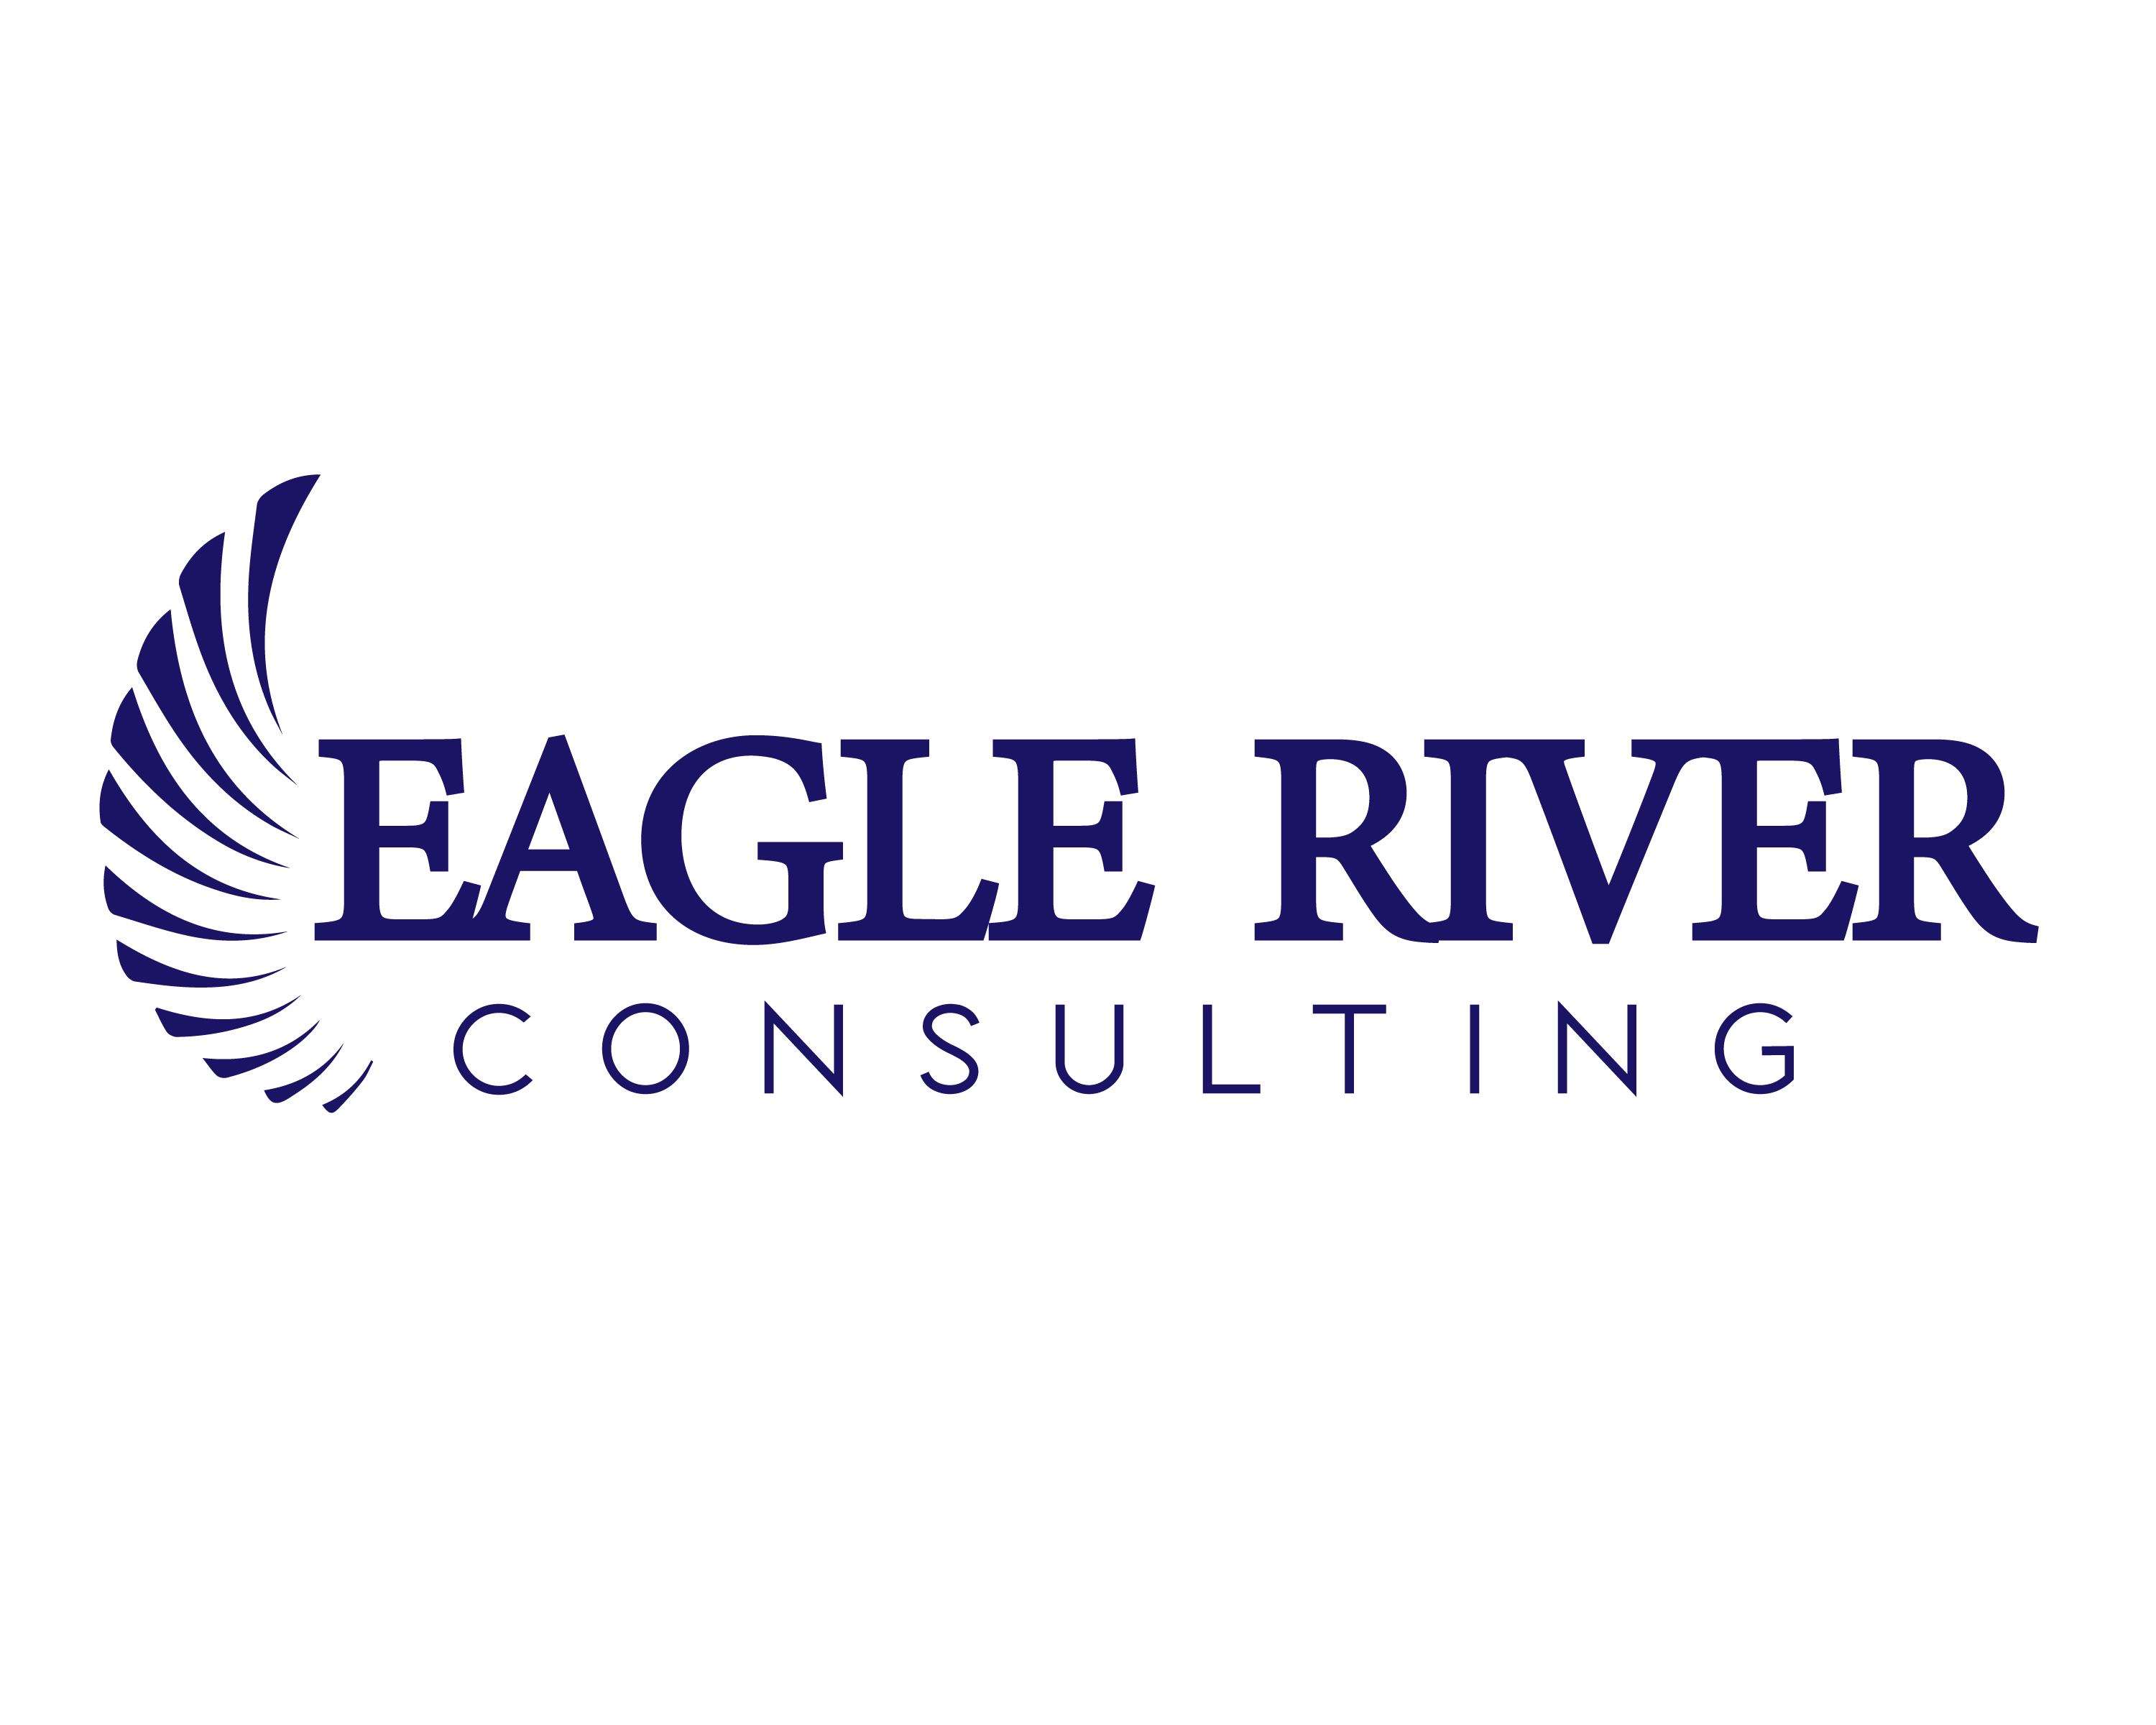 Eagle River Financial Consulting